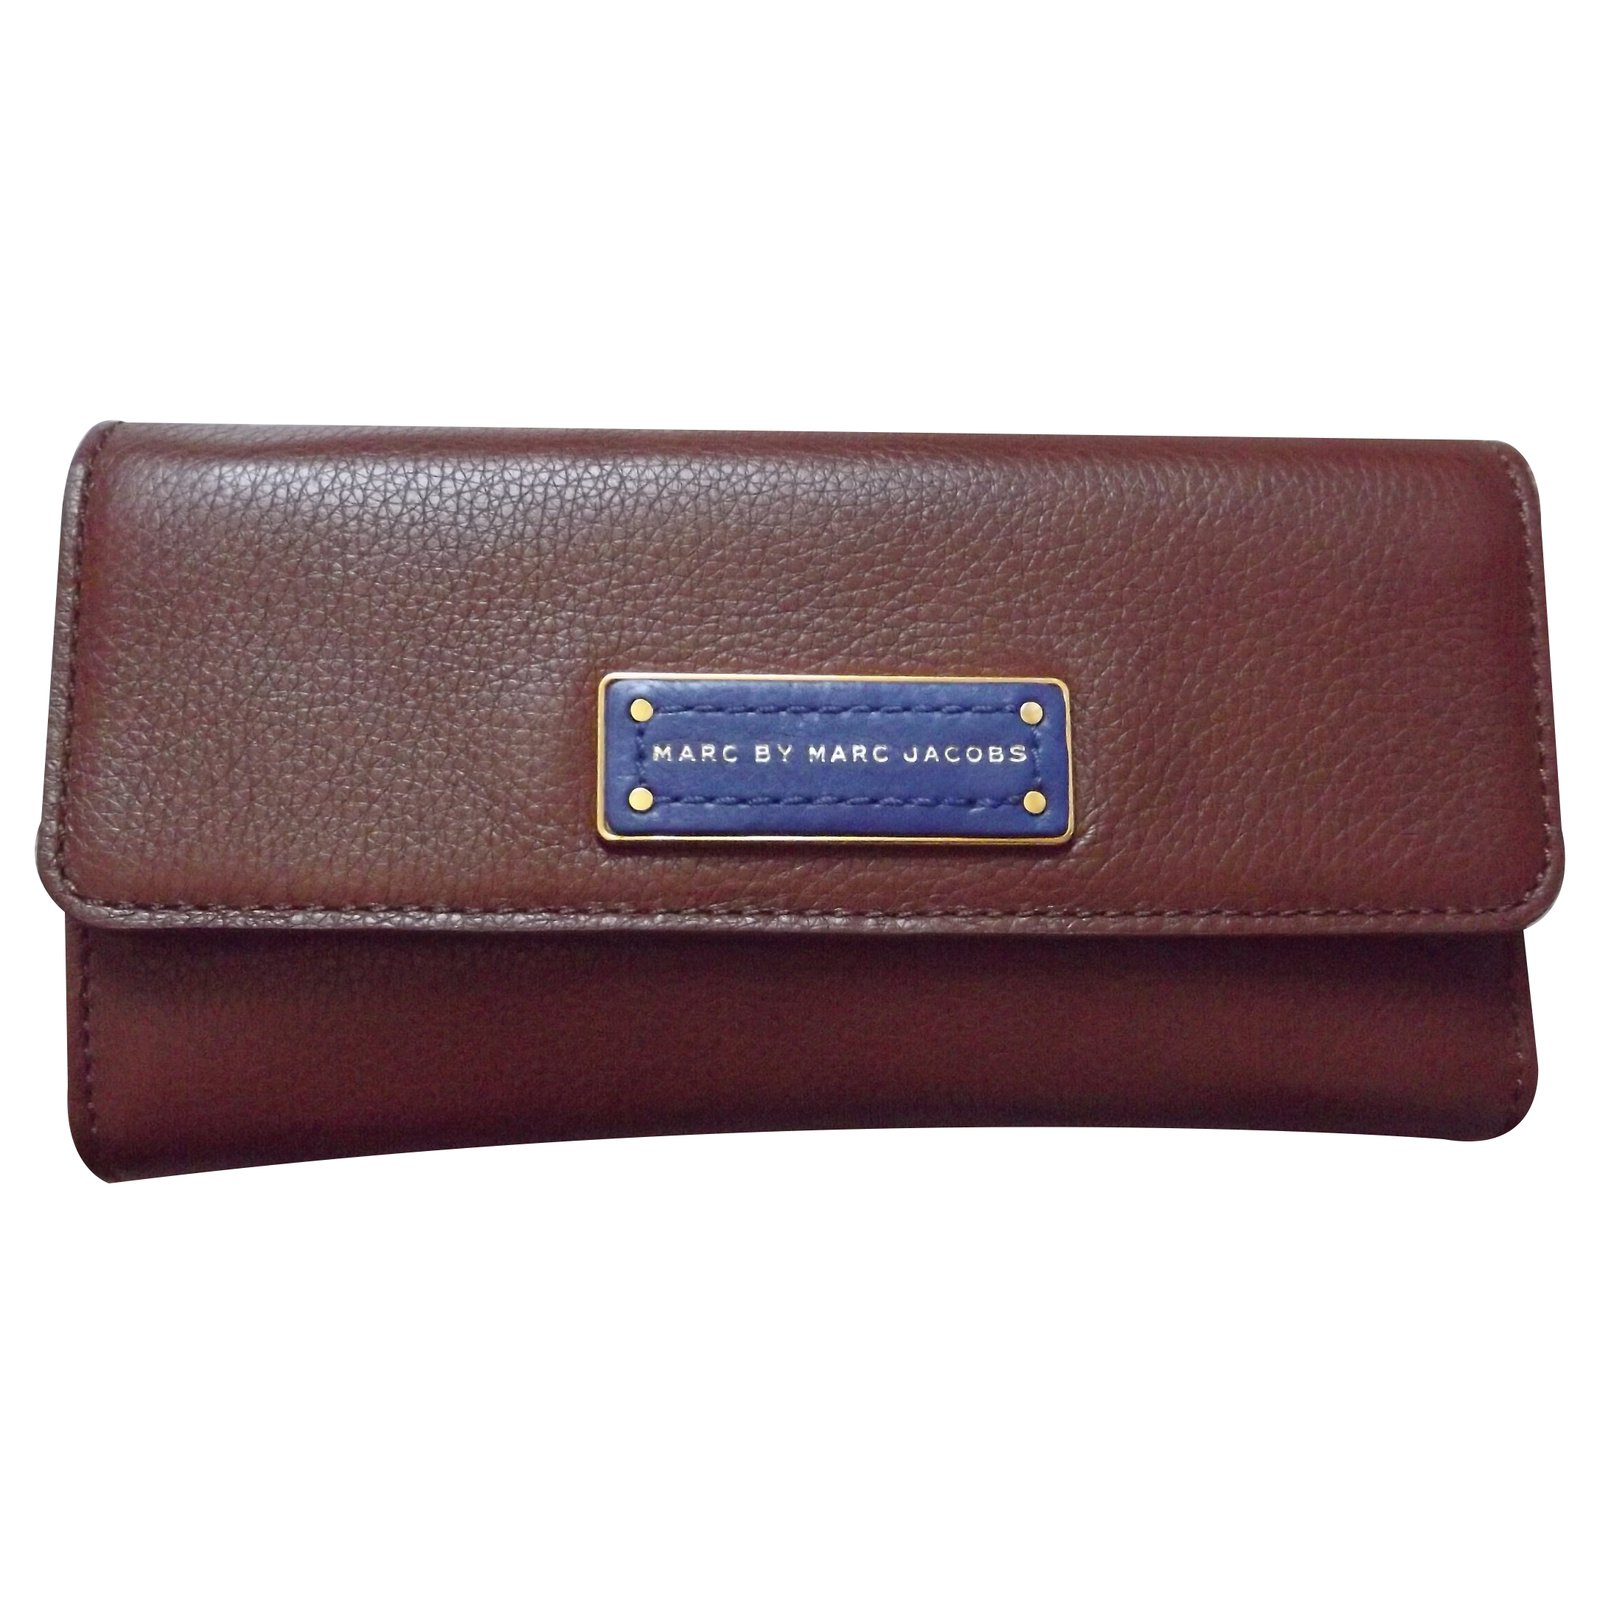 faf2d6f0c0f6f Marc by Marc Jacobs Wallets Wallets Leather Brown ref.19193 - Joli ...